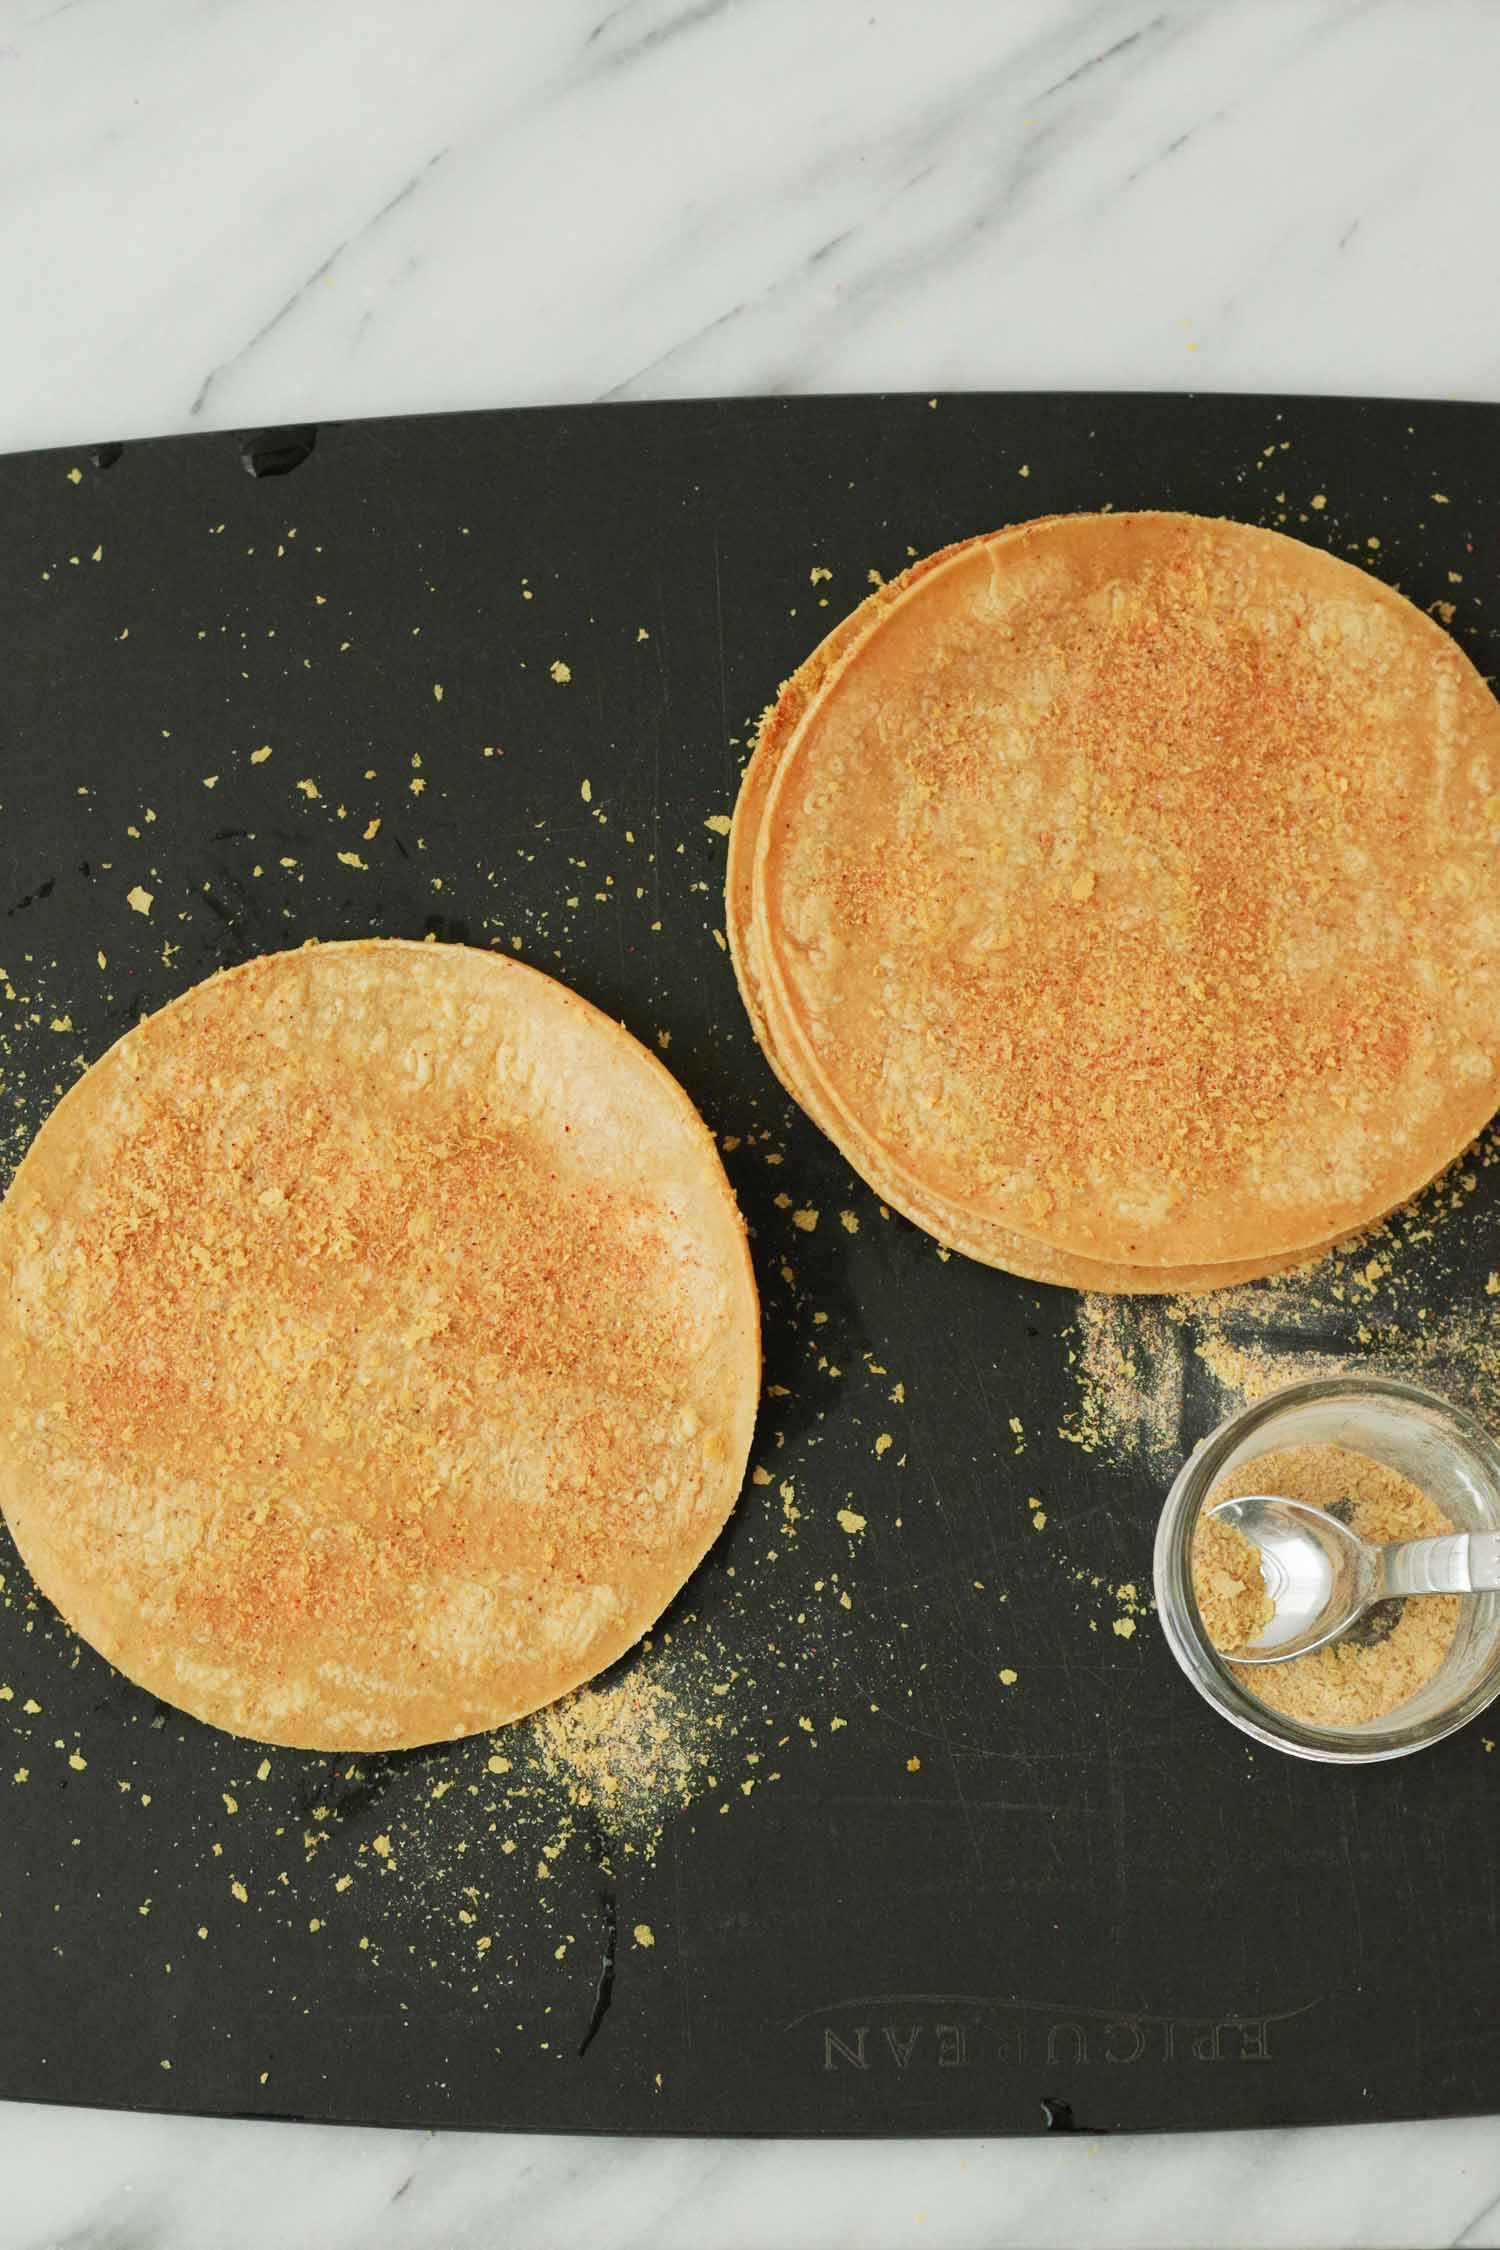 Sprinkling spices on tortillas for chips. By Beautiiful Ingredient